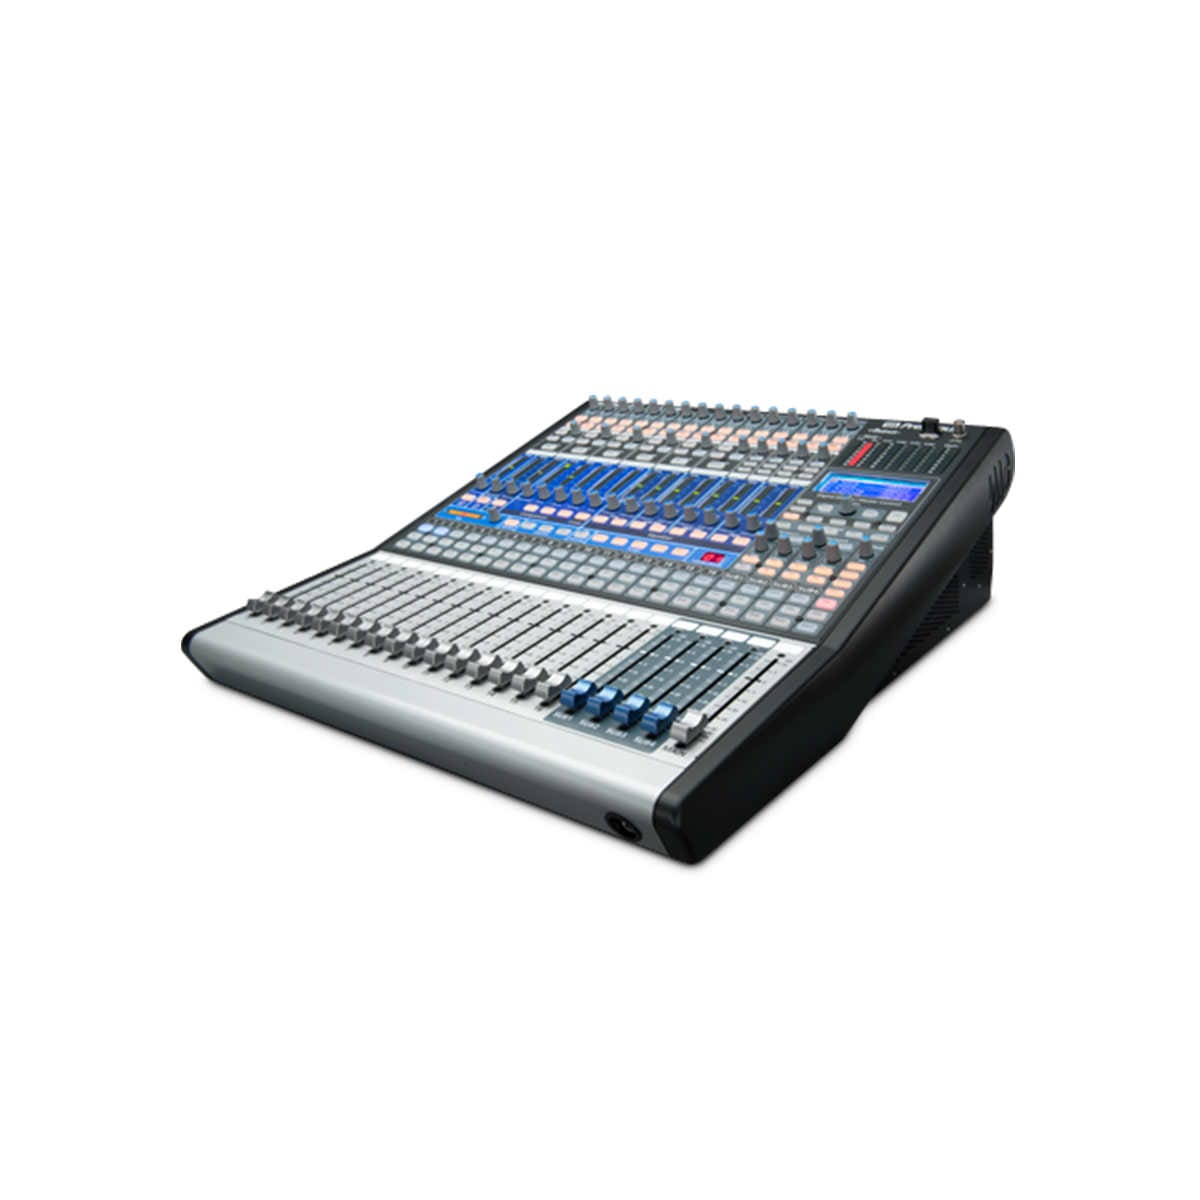 StudioLive 16.4.2AI 16 Channel Digital Mixer